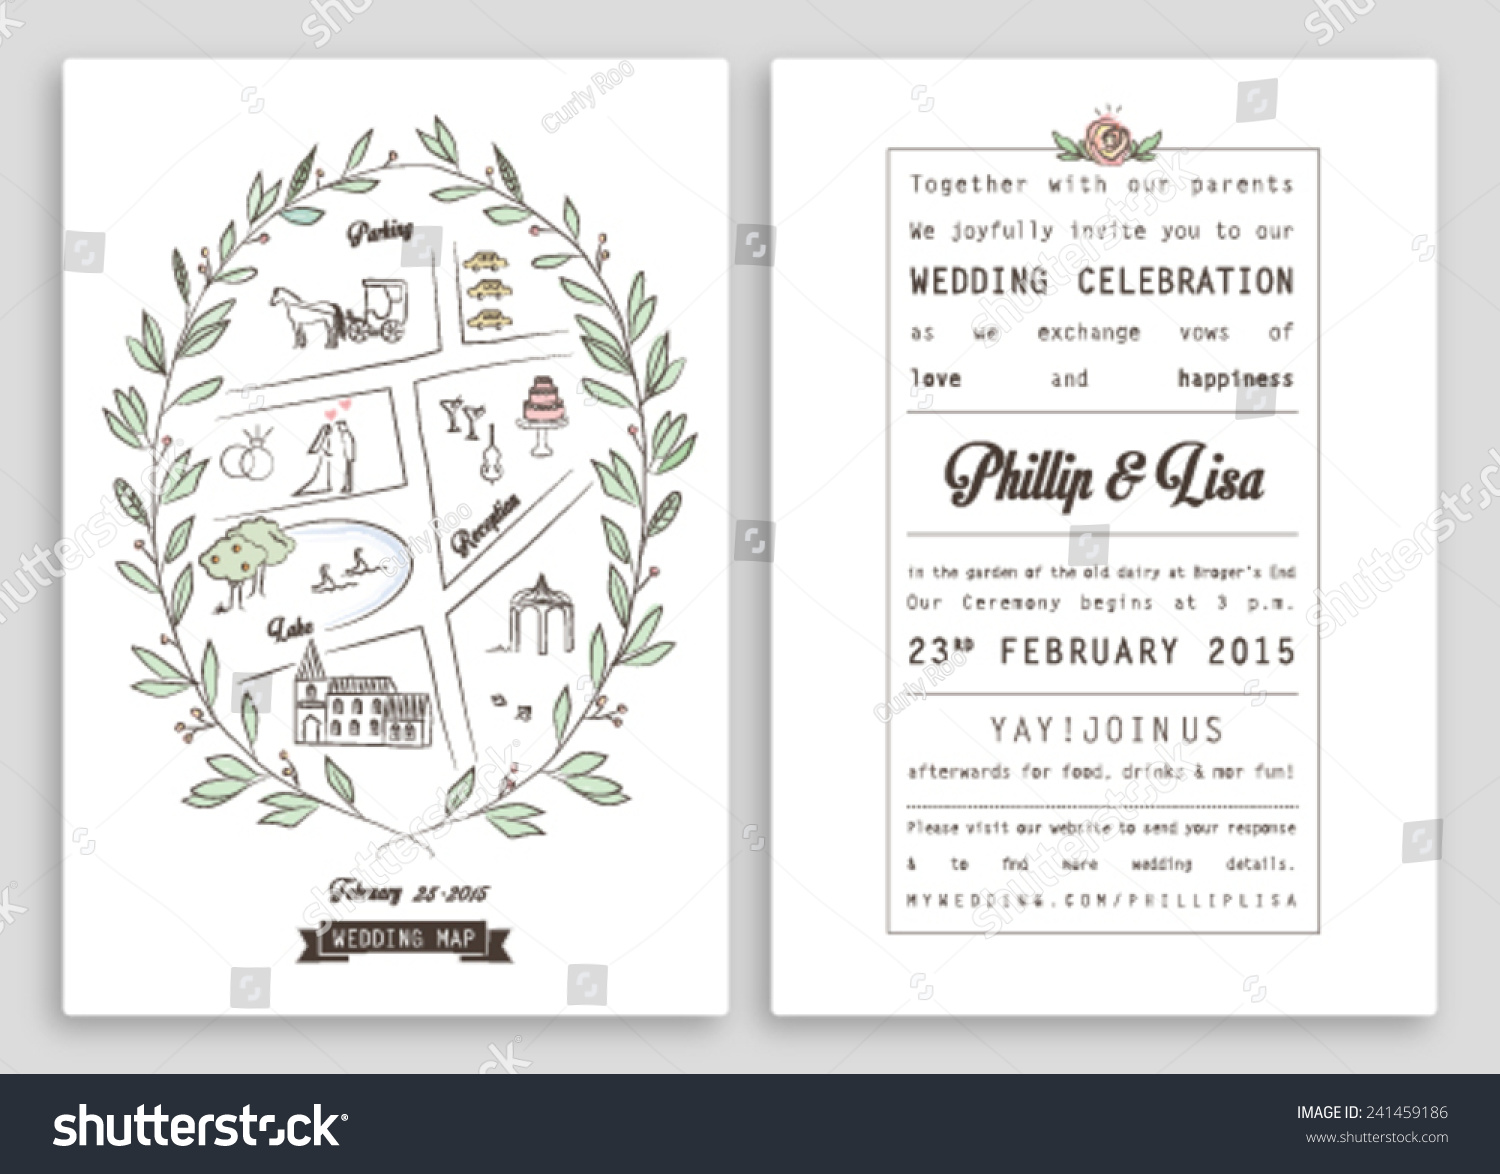 New wedding invitations for you wedding invitation design layout wedding invitation design layout stopboris Choice Image